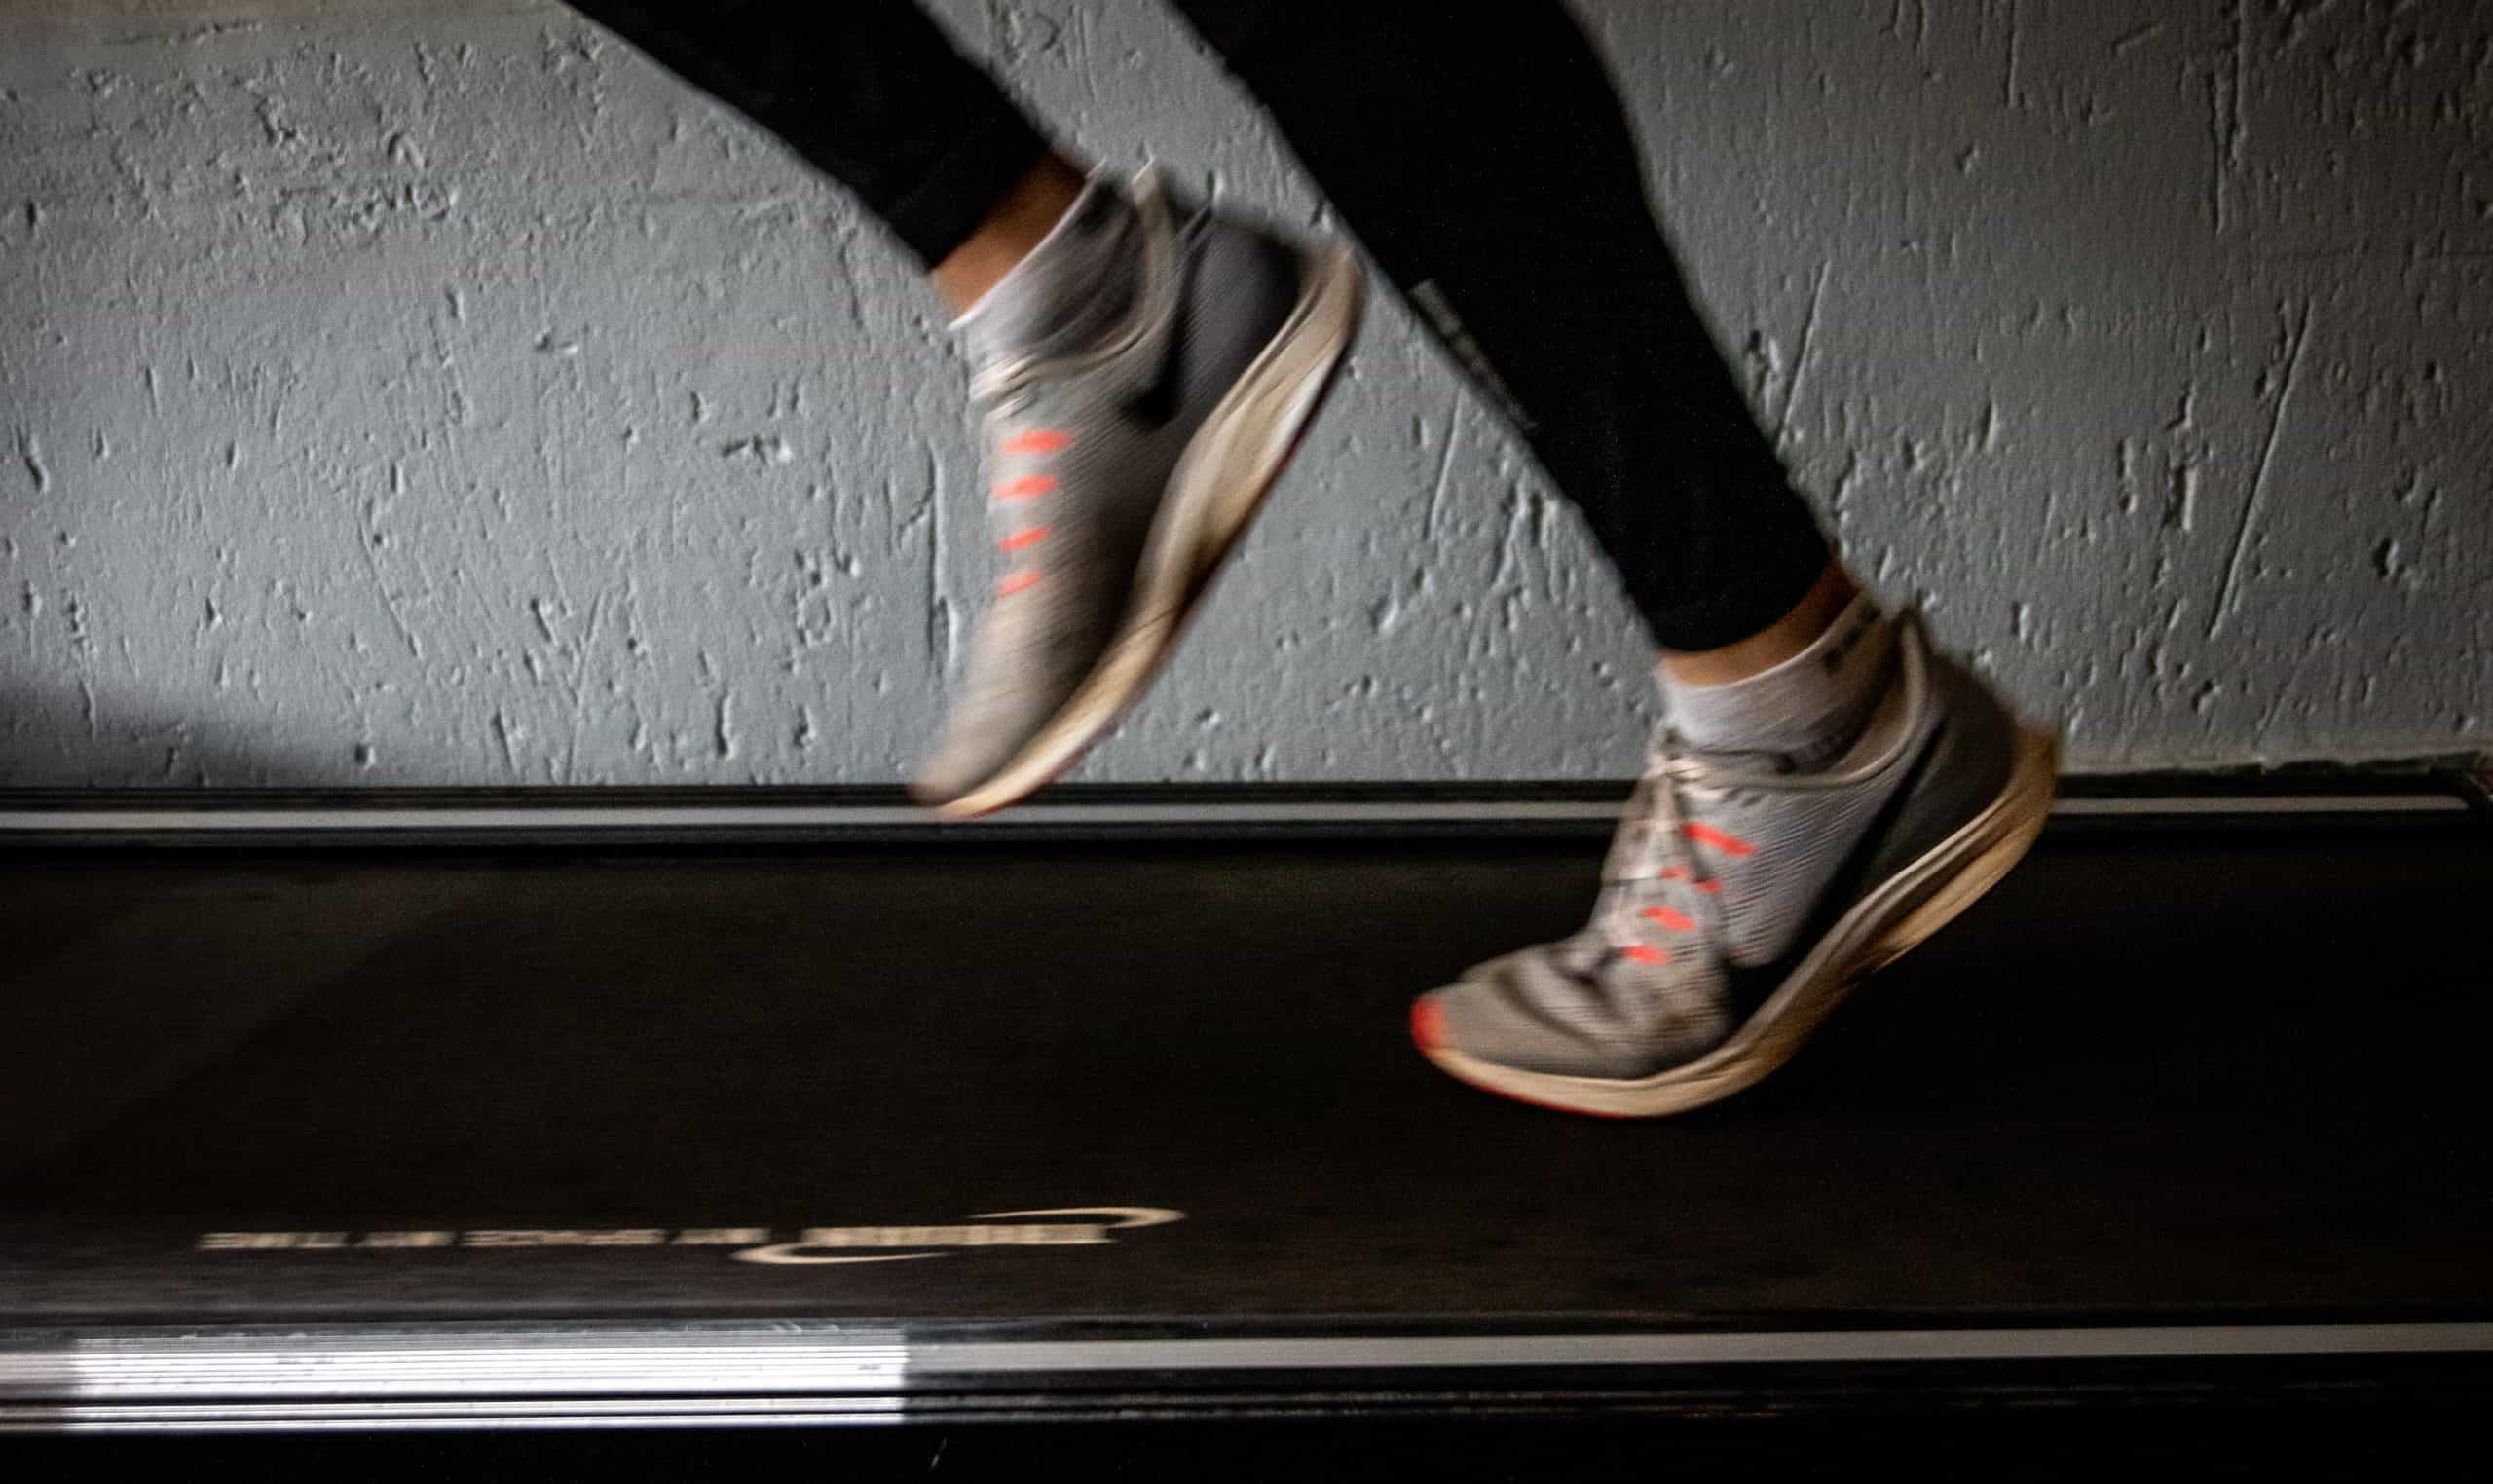 The Best Non-Motorized, Self-Powered Treadmills in 2021